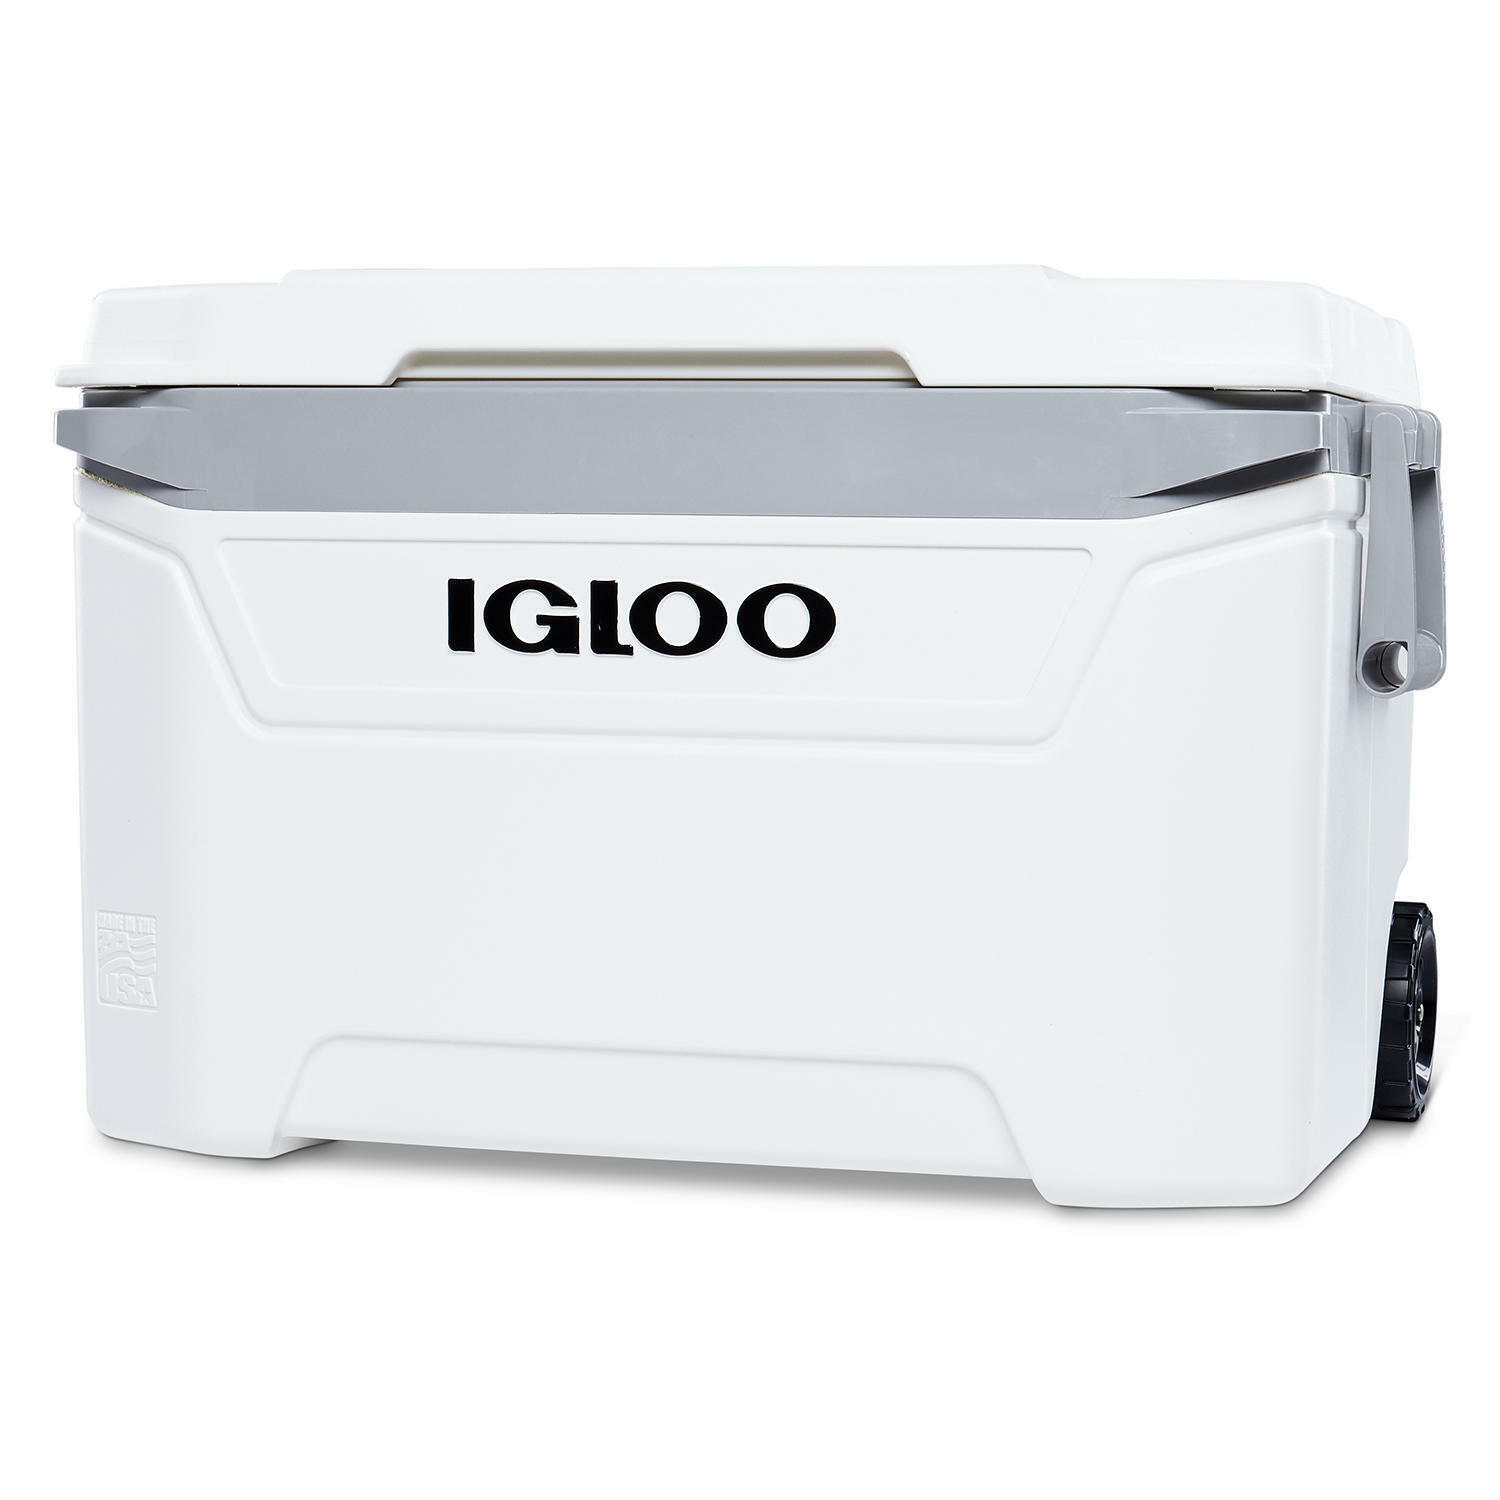 Igloo Sunset Heavy-Duty Wheels Rolling Cooler with Swing-Up